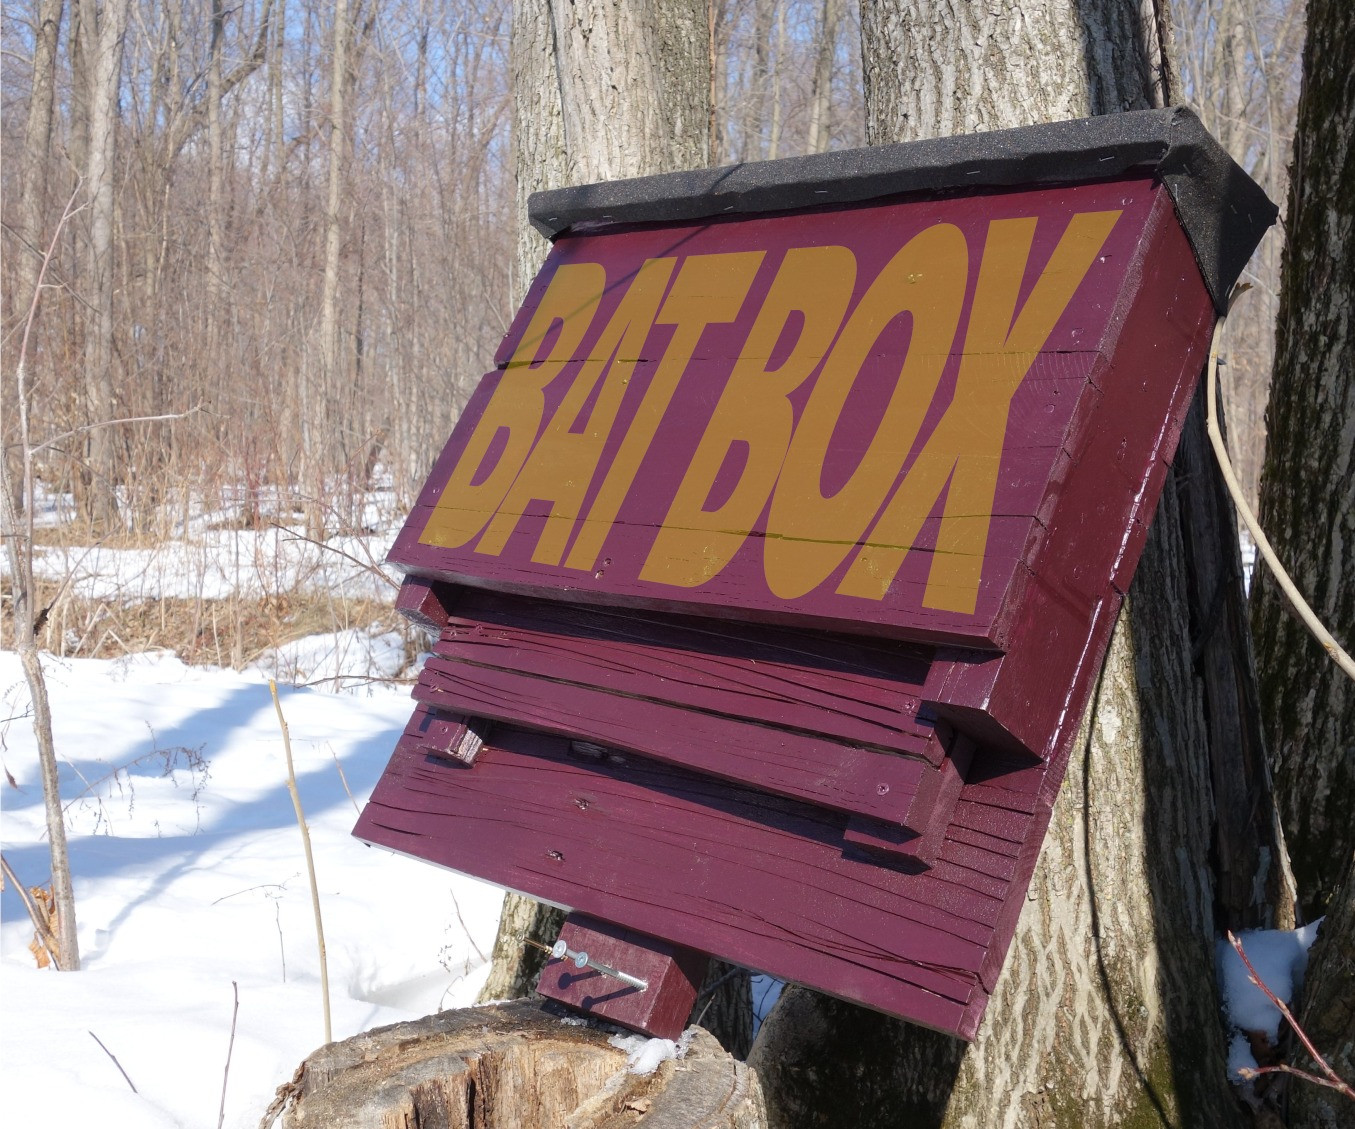 Best ideas about Bat Box DIY . Save or Pin Bat Box From a Reclaimed Pallet 7 Steps with Now.